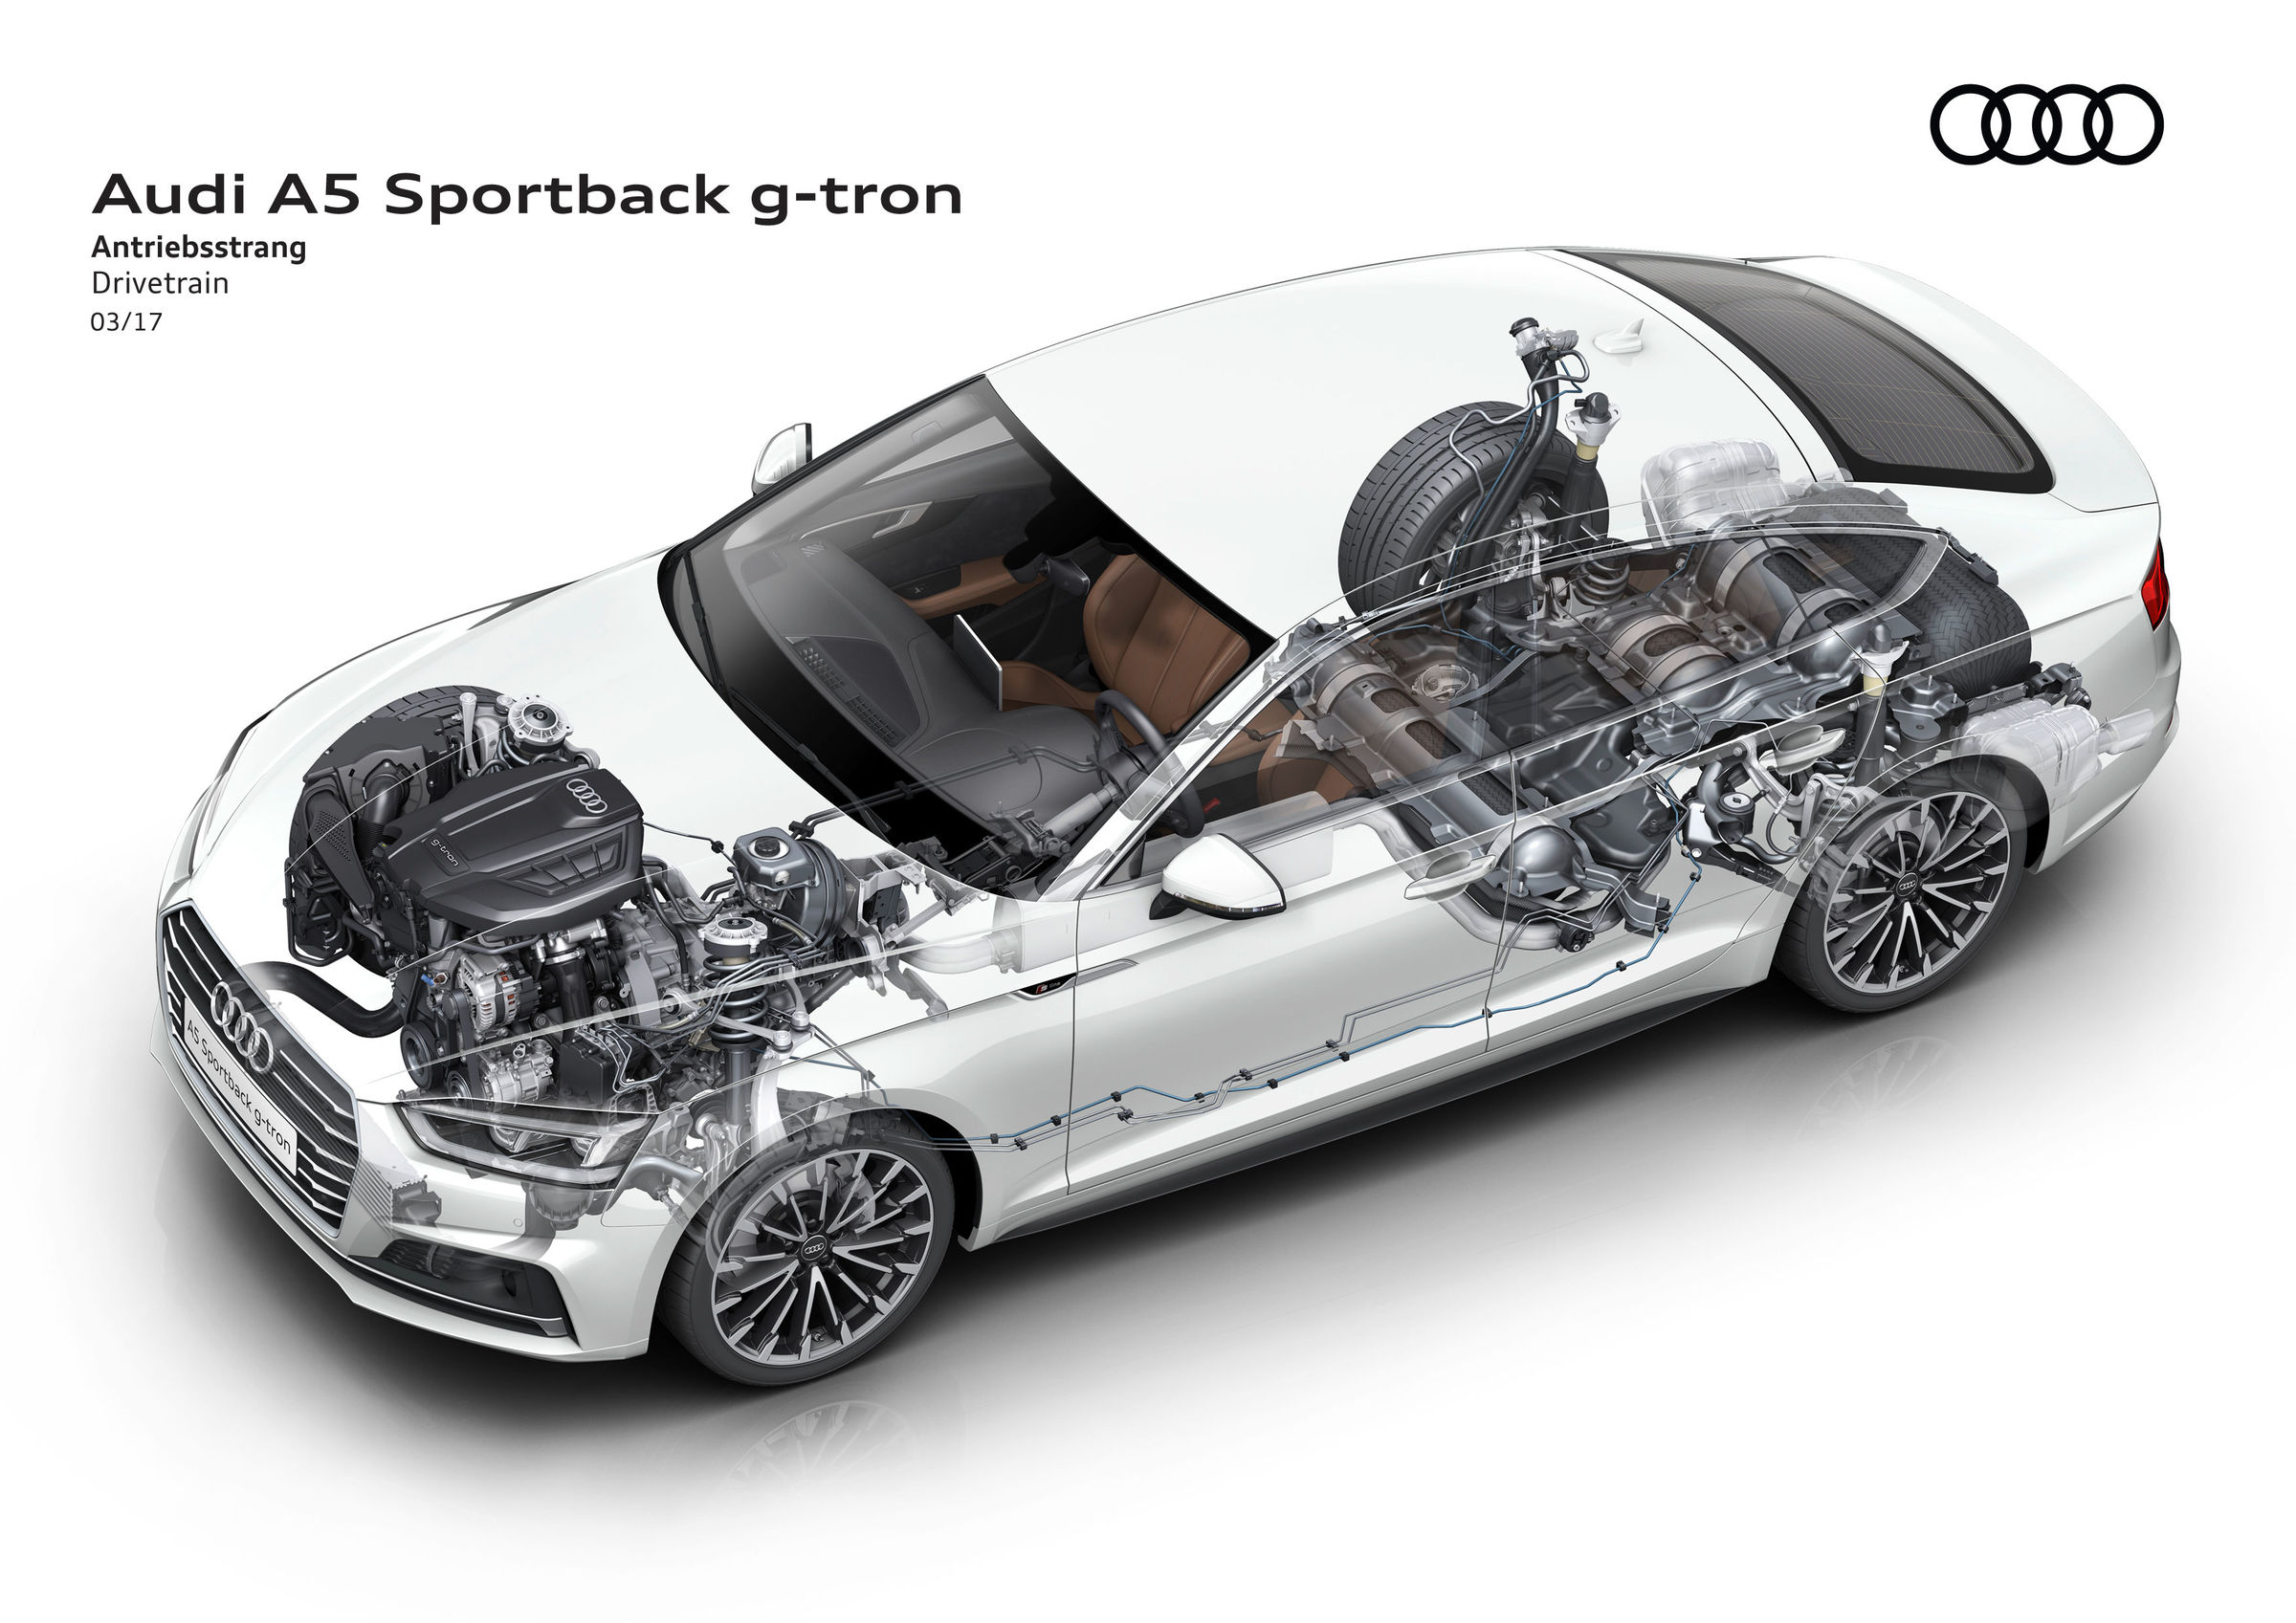 drops week engines new model the names audi size in uk engine a